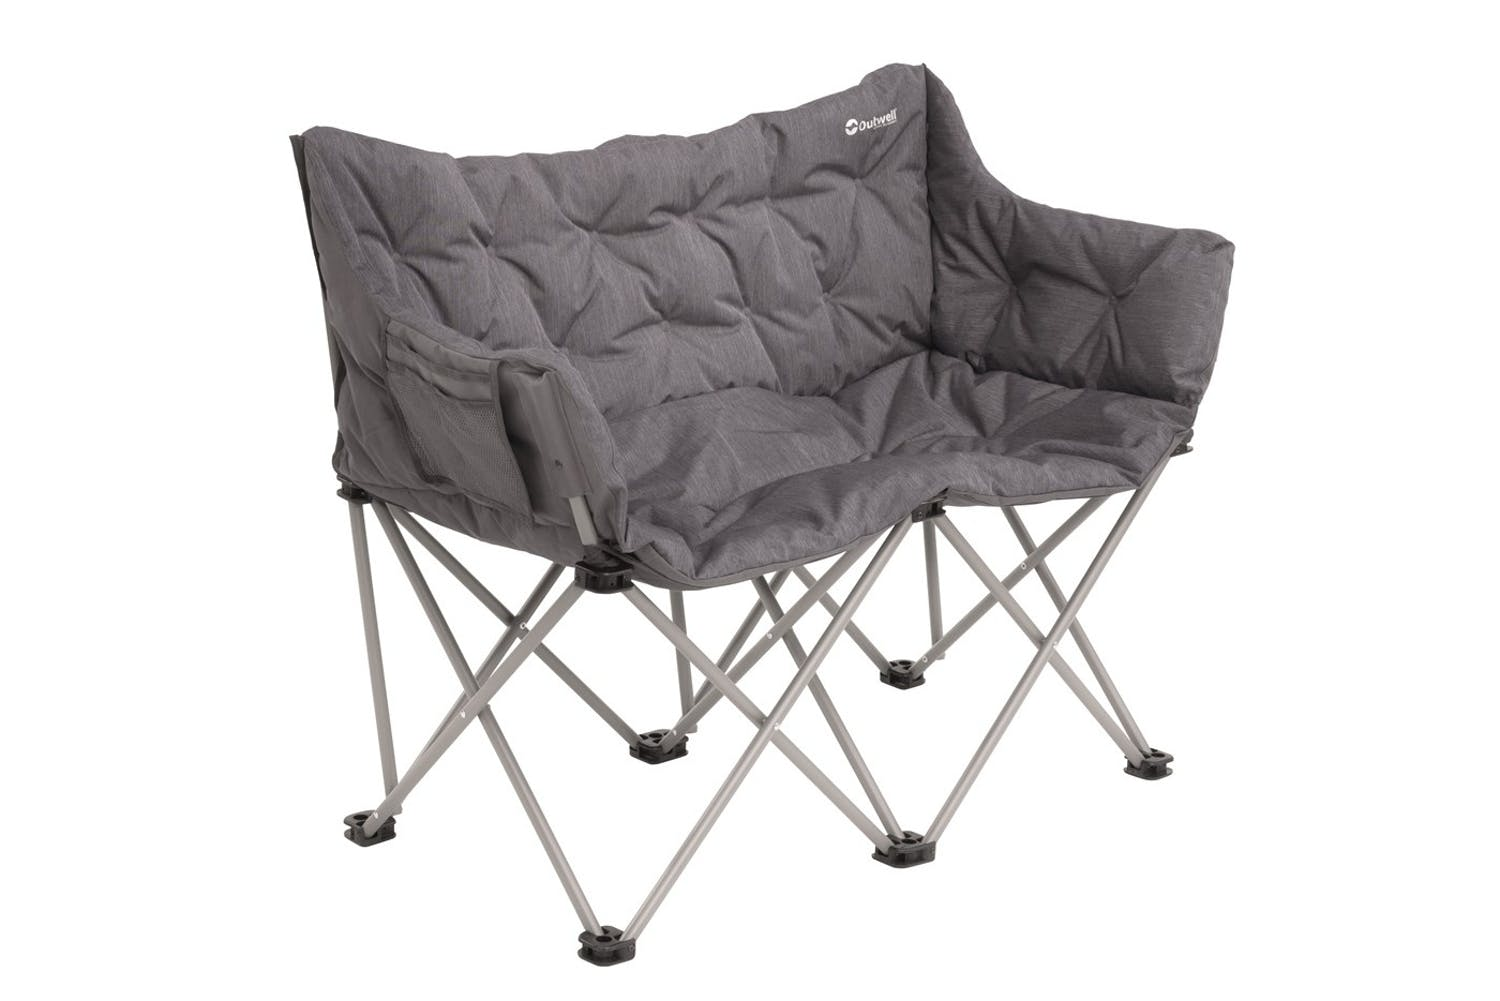 Outwell Sardis Lake Camping-Chair